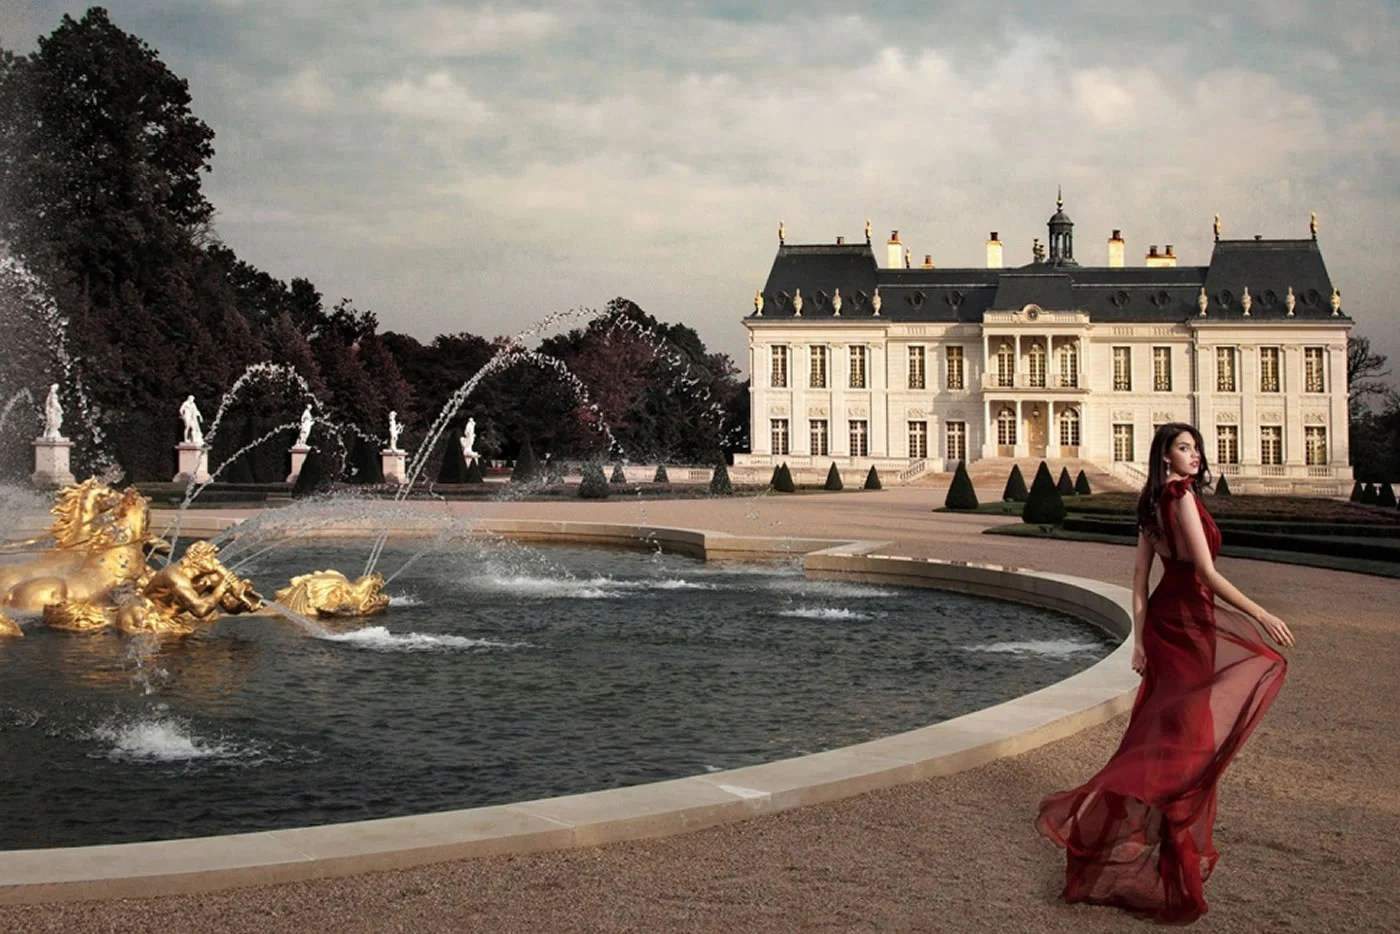 The worlds most expensive home is a French palace brought